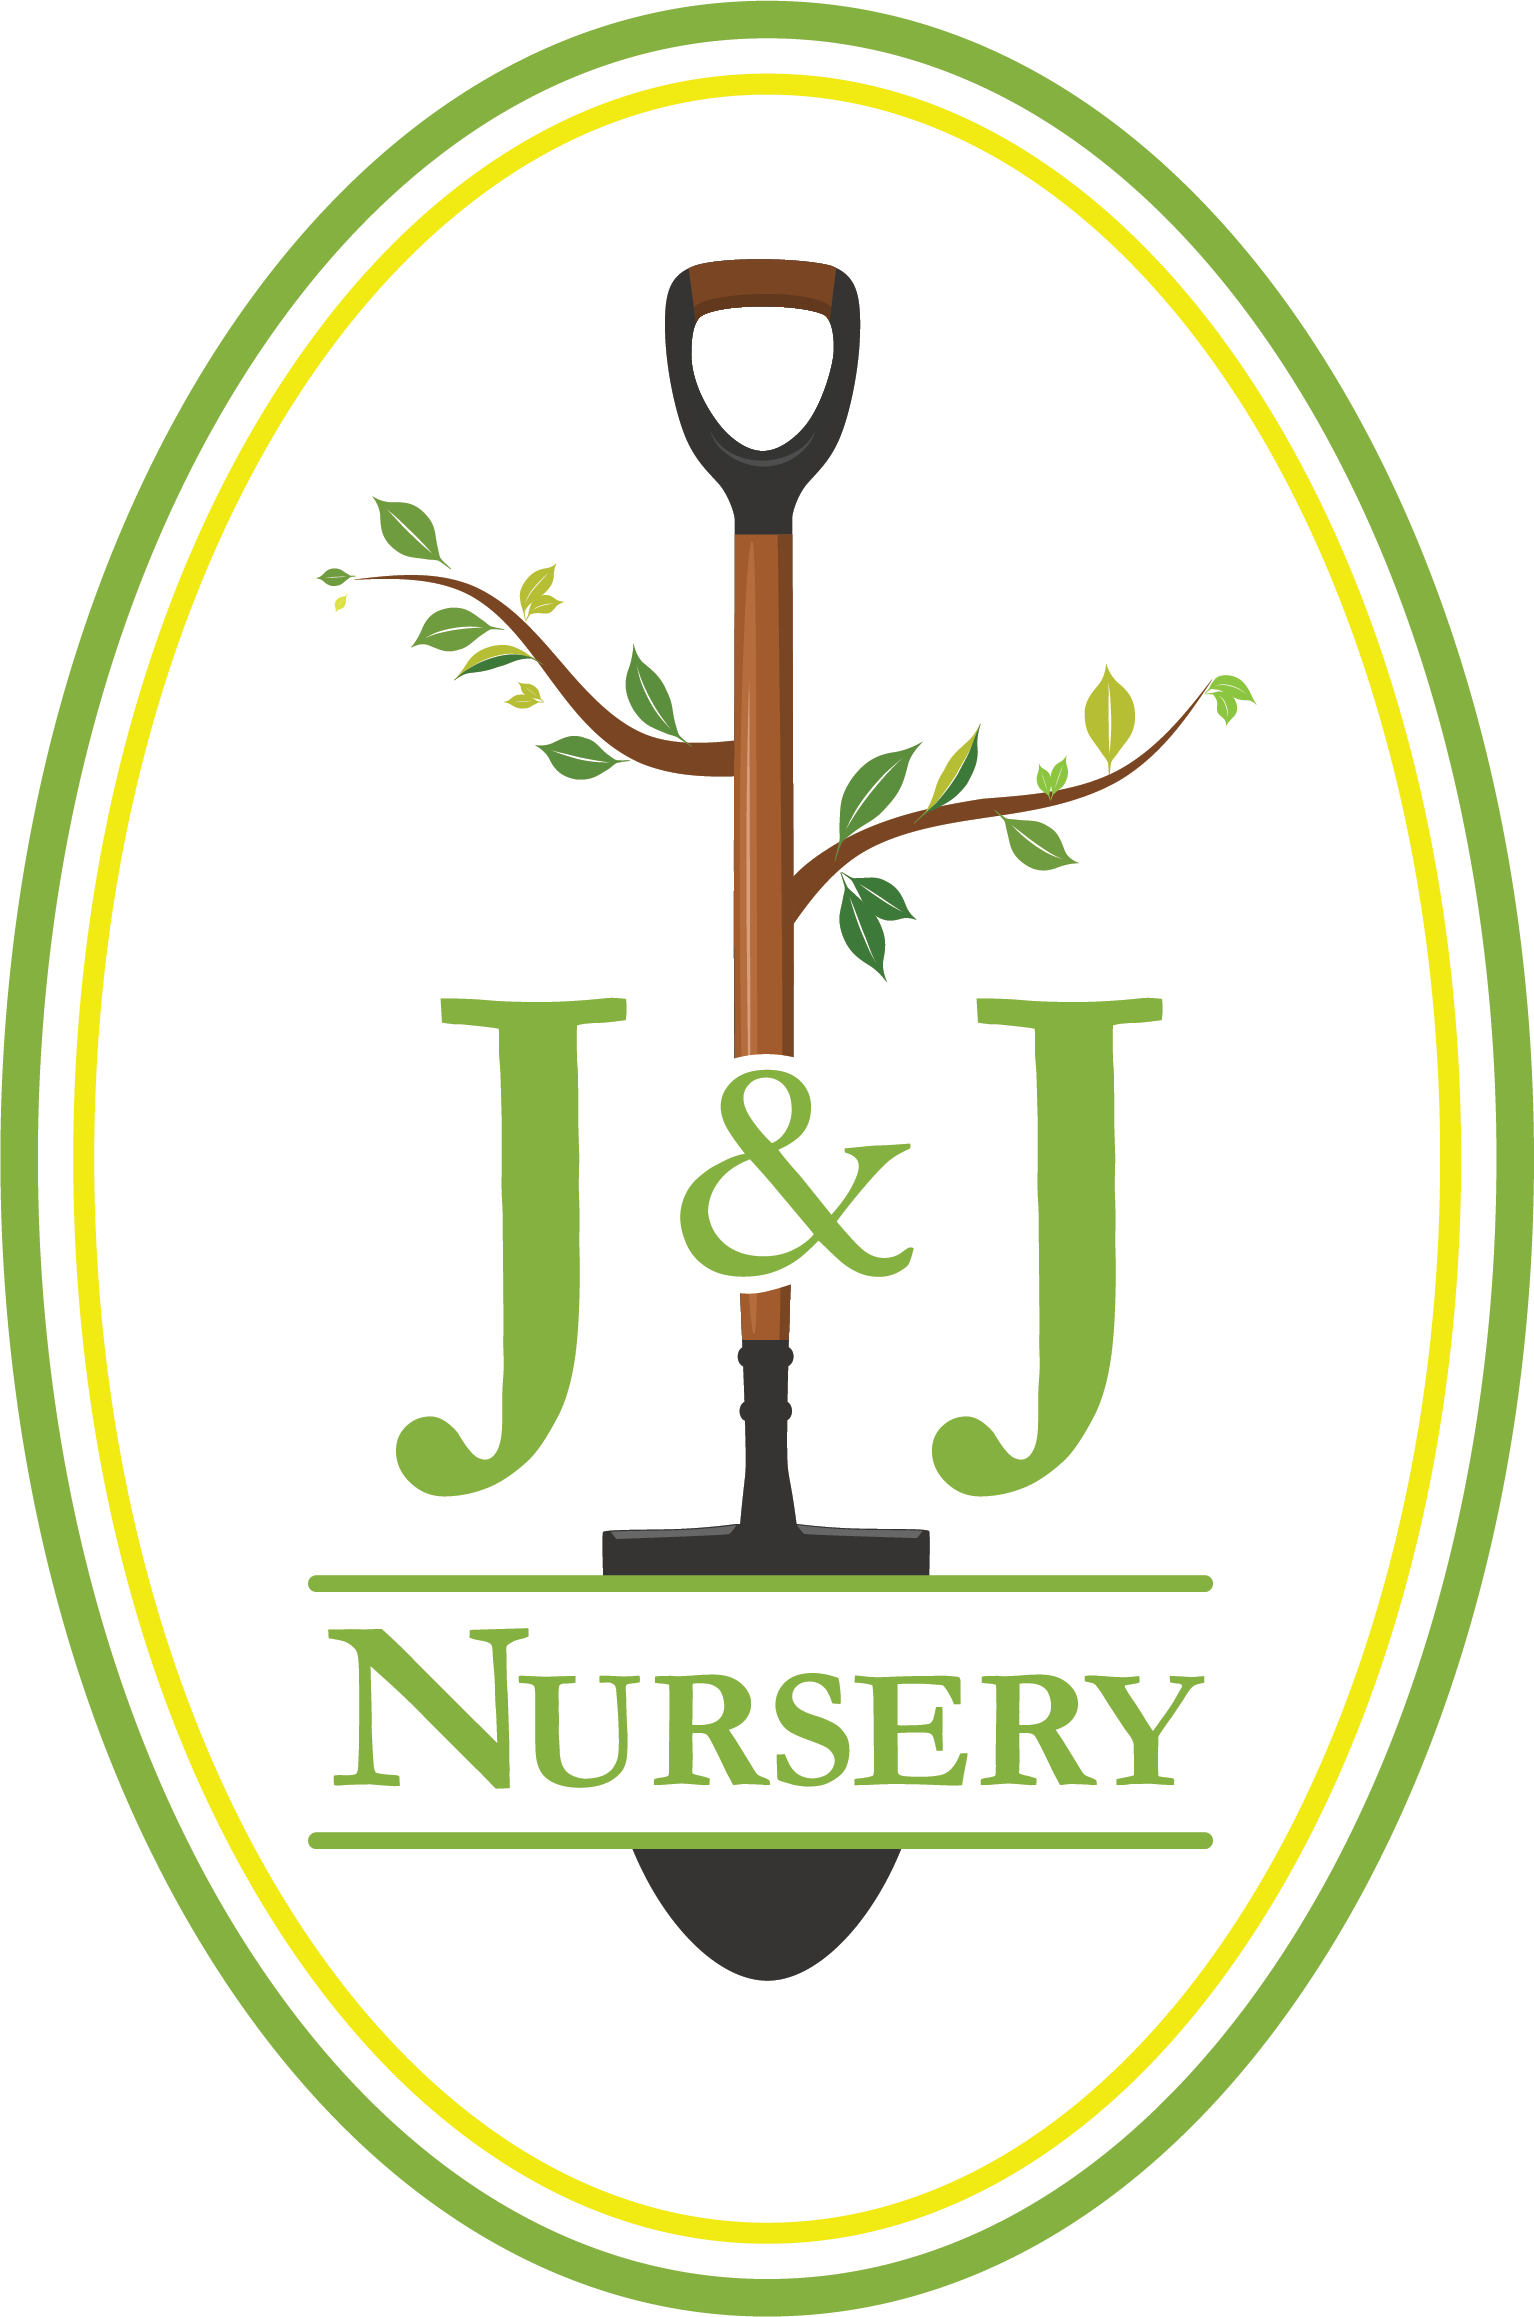 Deliveries From J&J Nursery